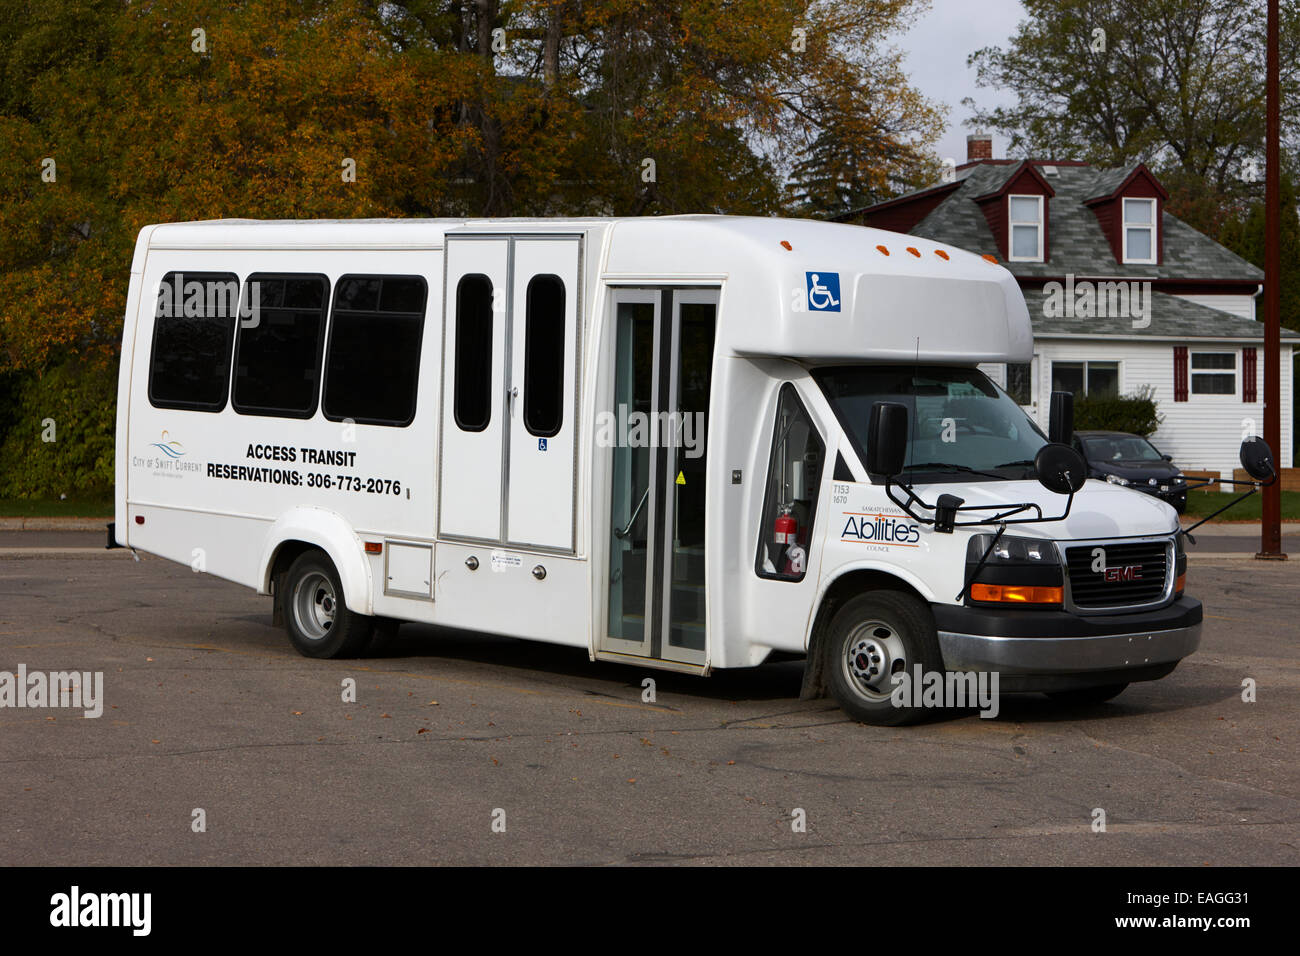 access transit bus owned by local city authority swift current Saskatchewan Canada - Stock Image